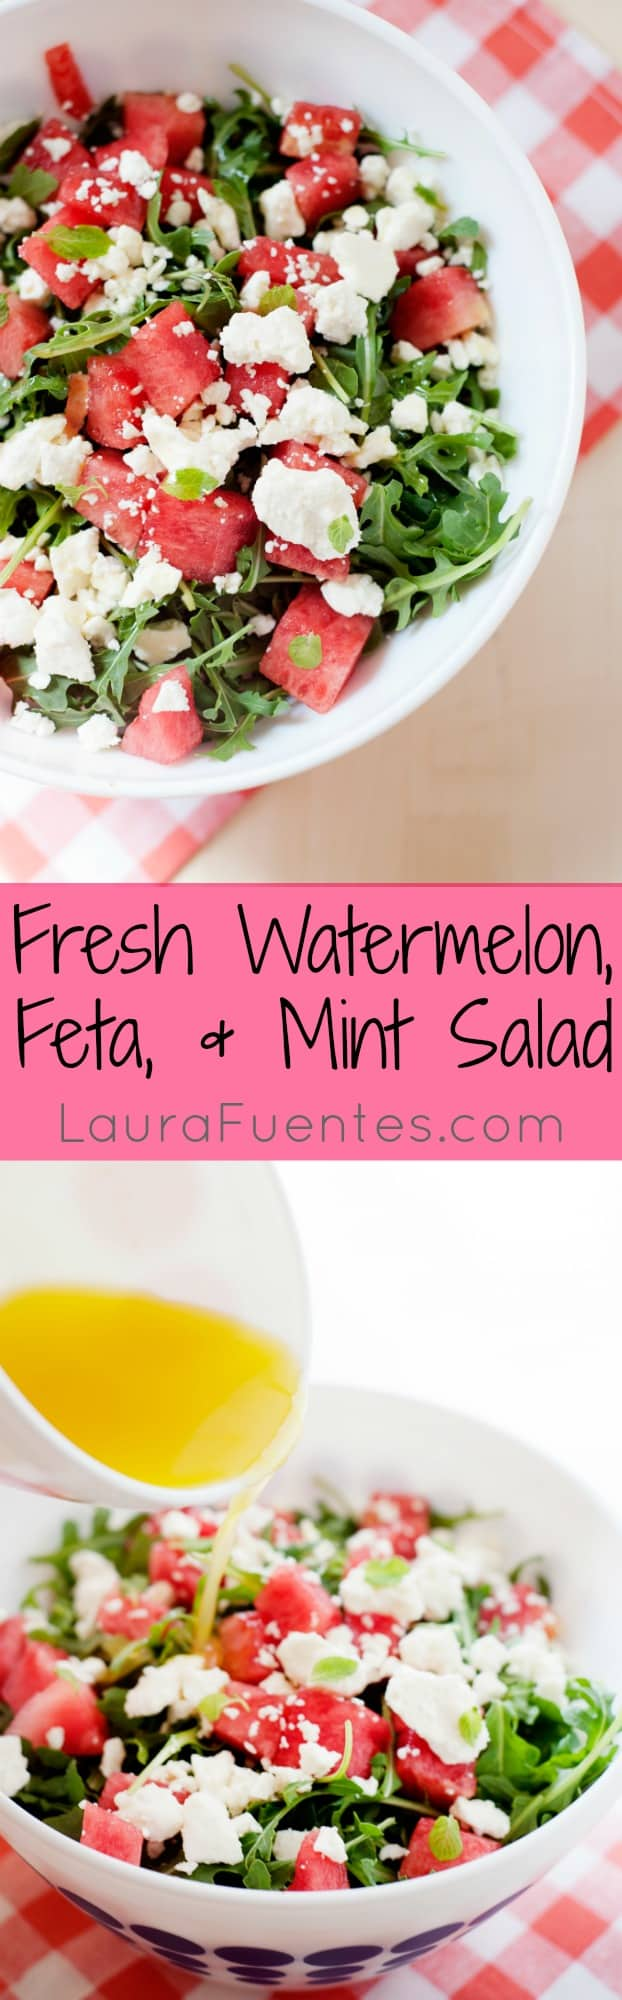 Watermelon Feta Salad - A cool, refreshing salad that's perfect for summer cookouts!